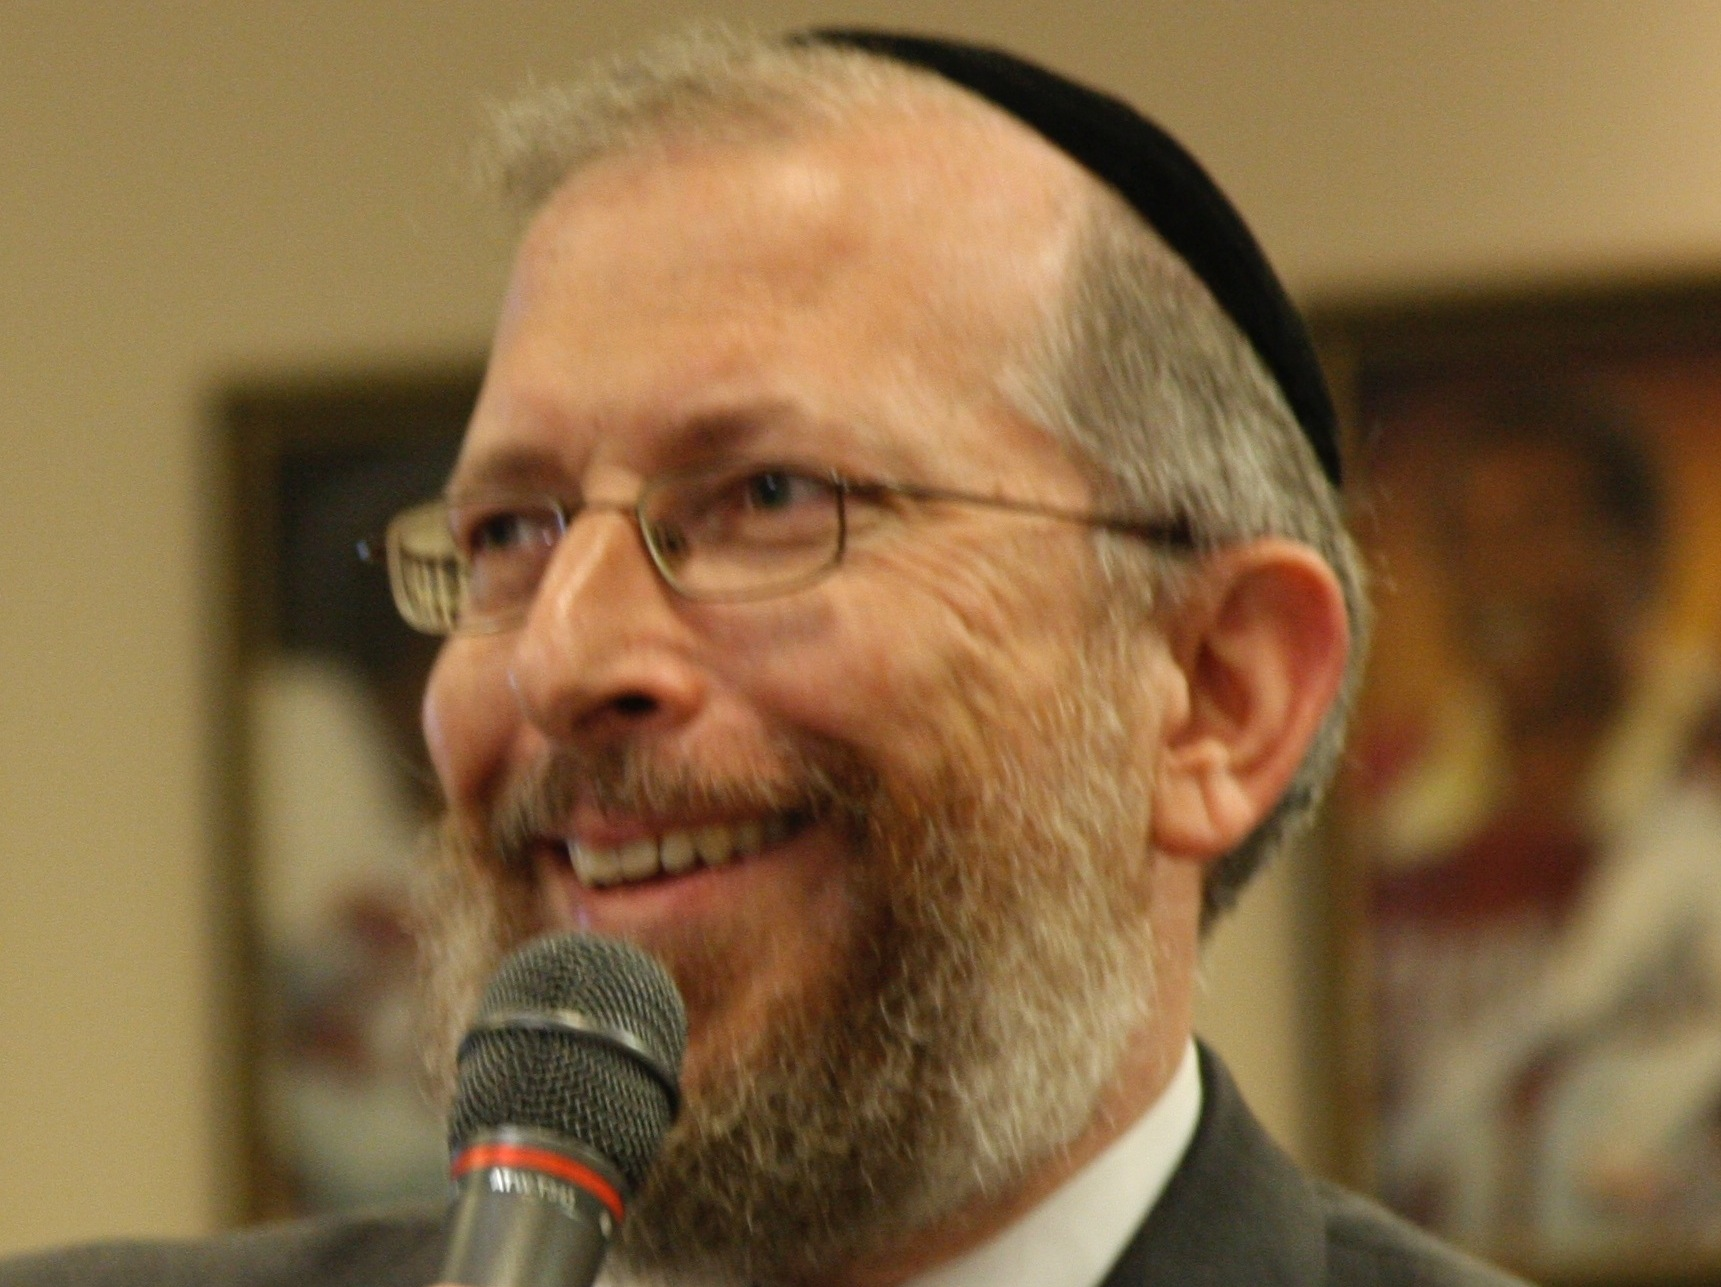 Rabbi Elimelech Goldberg